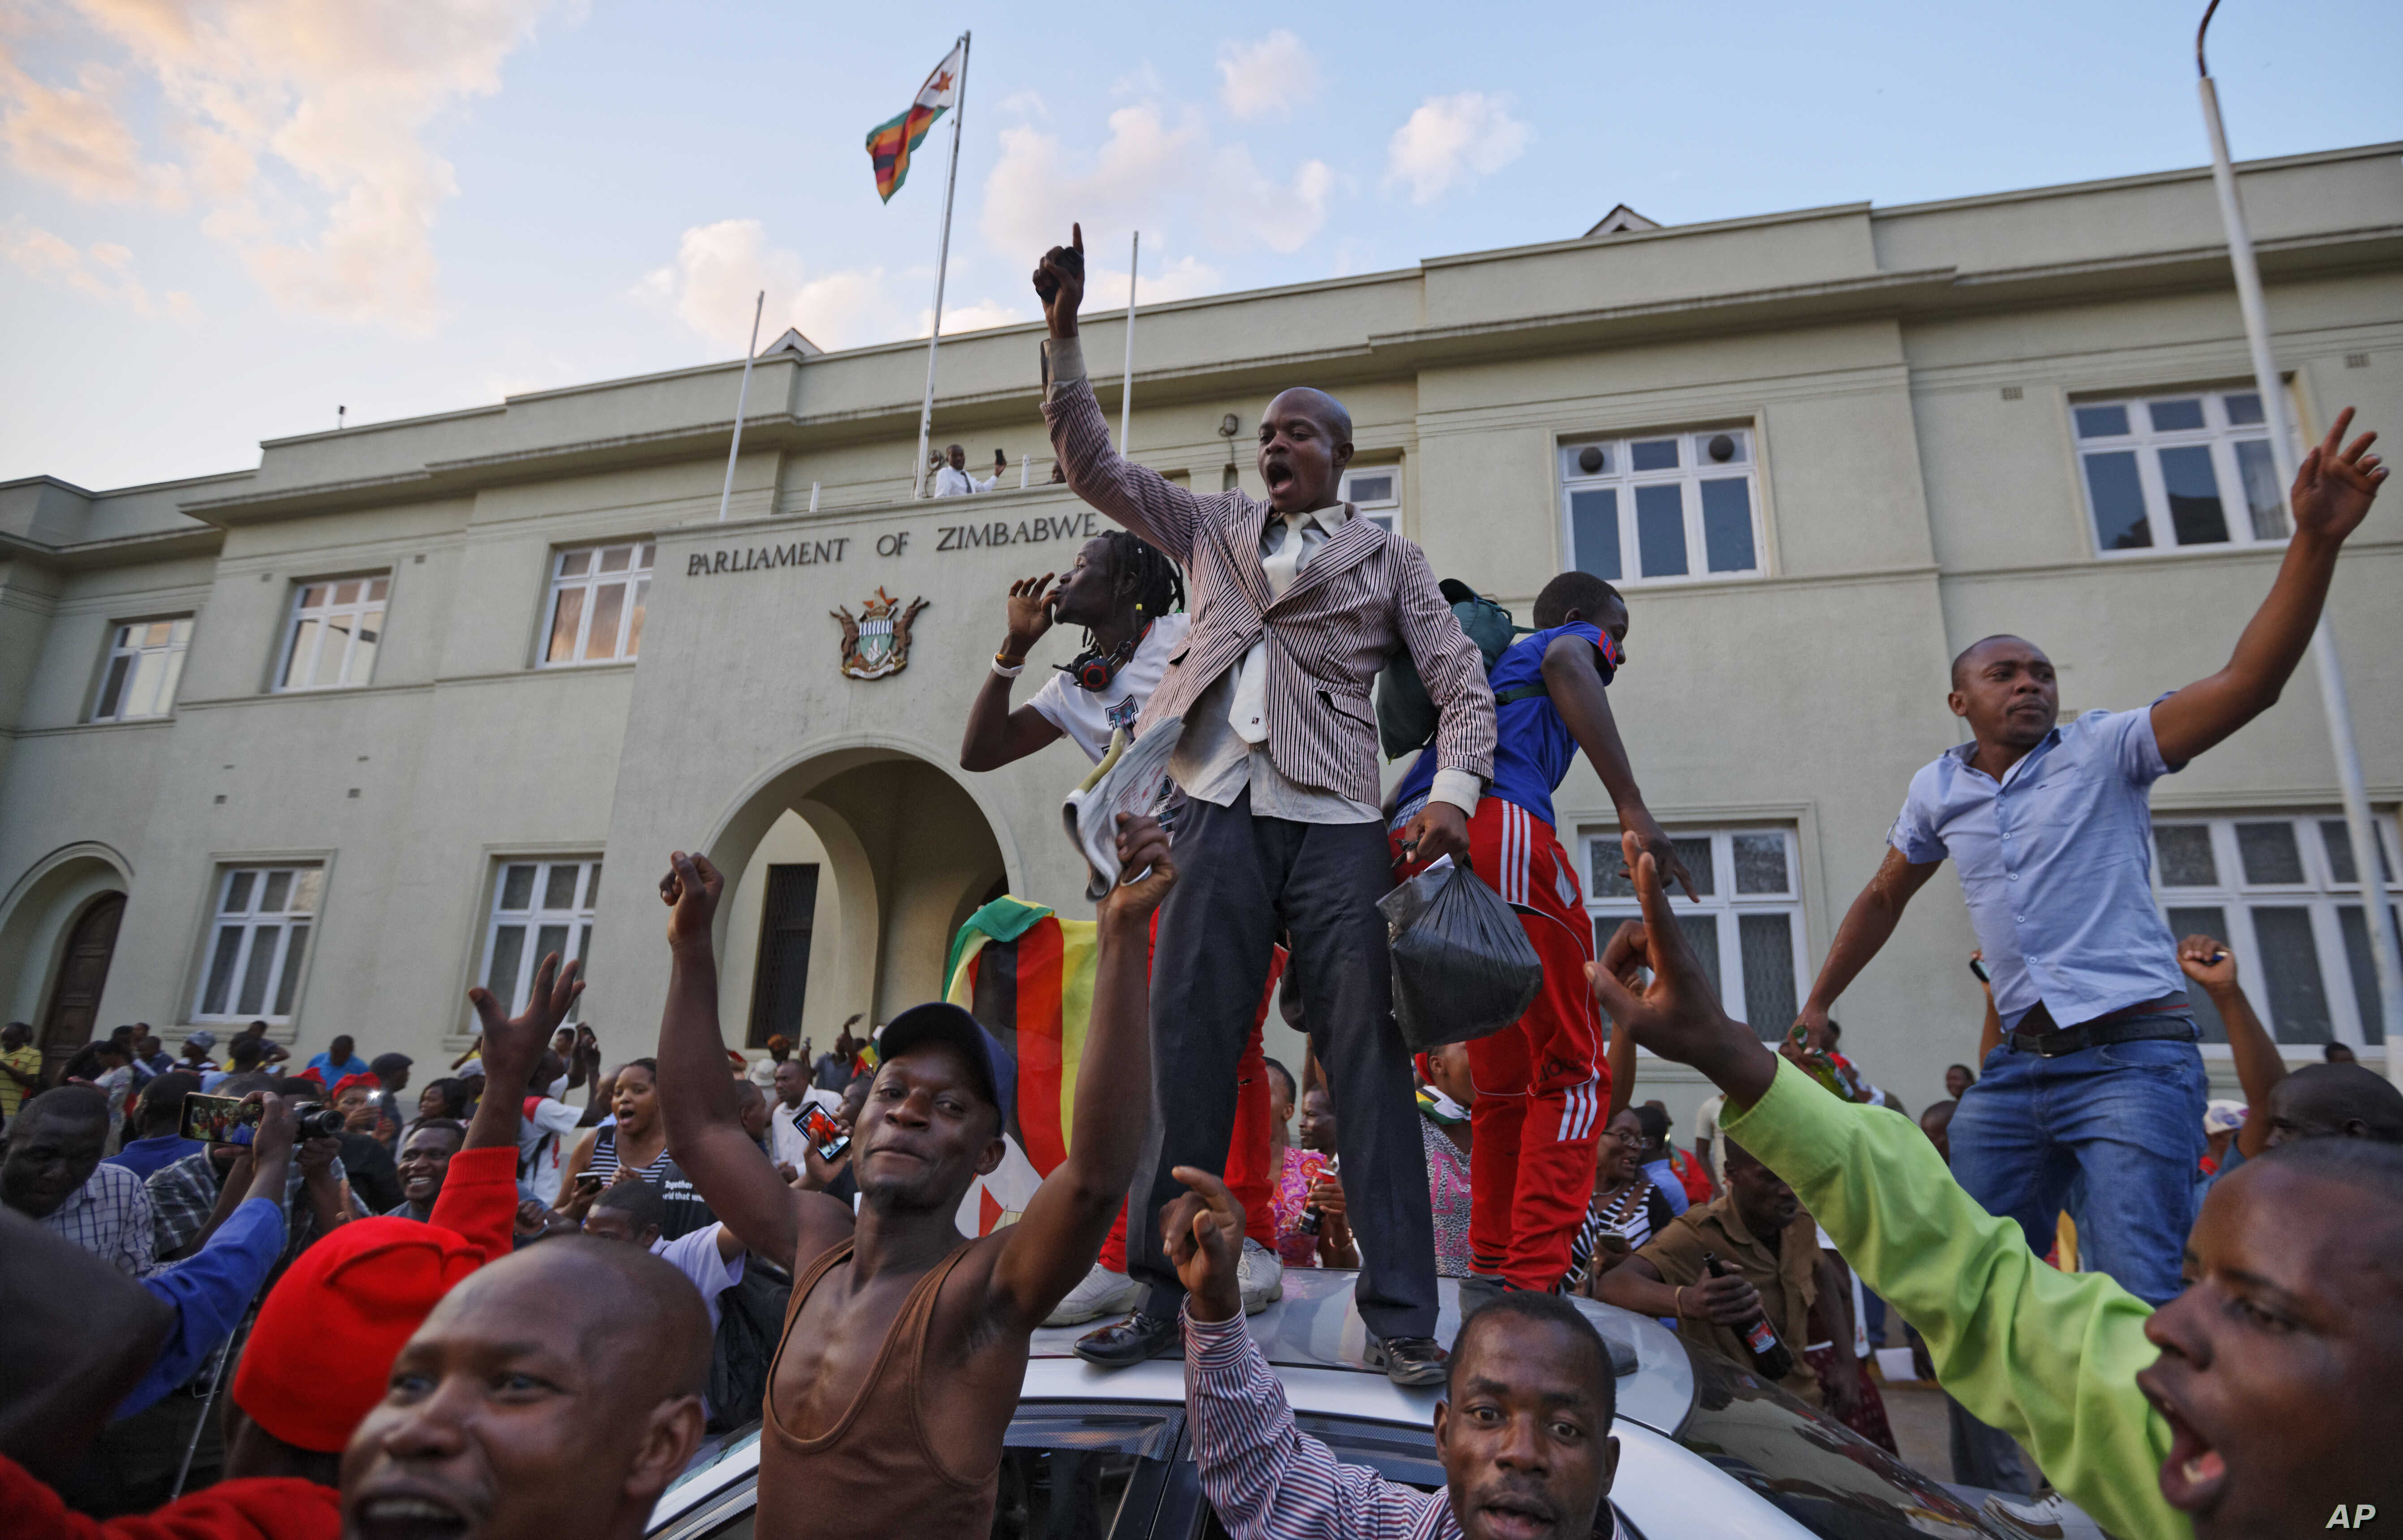 Celebrations in Harare After Mugabe Resigns | Voice of